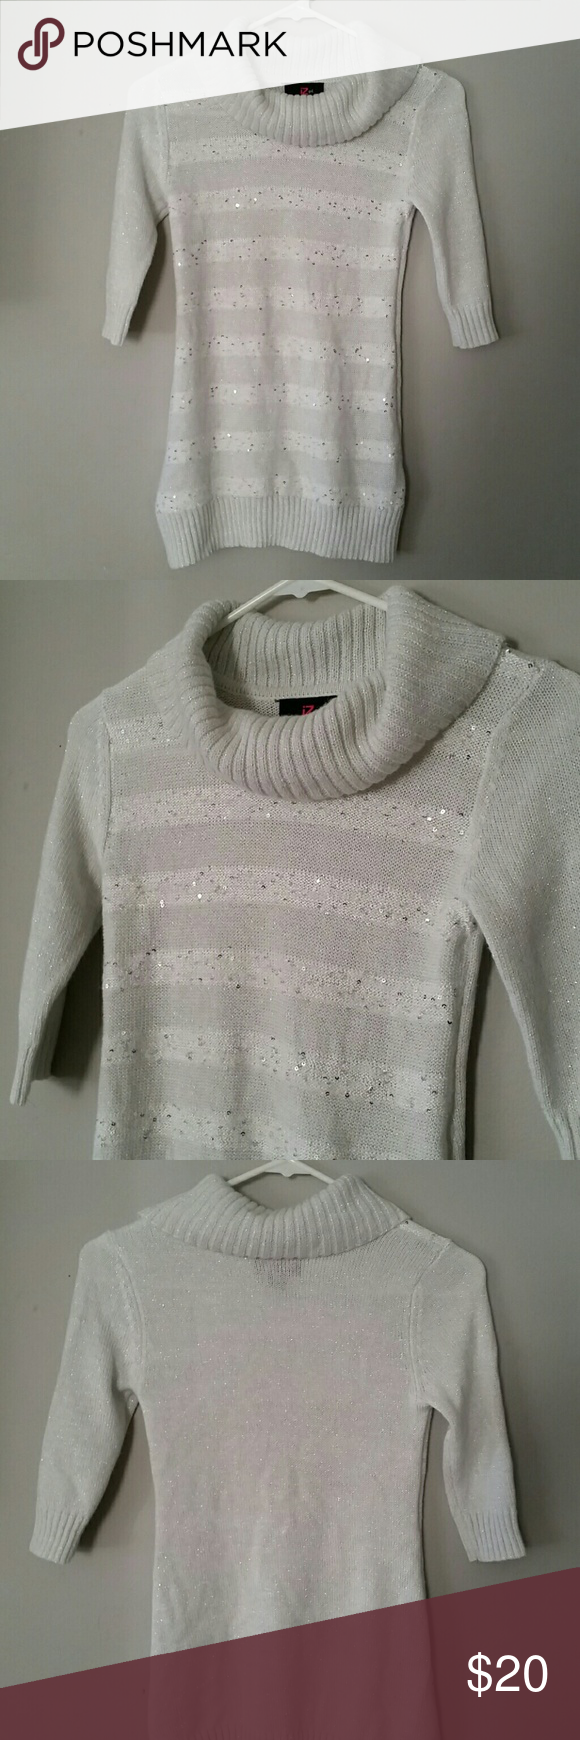 Girls cowl neck sweater | Silver sequin, Cowl neck and Sequins